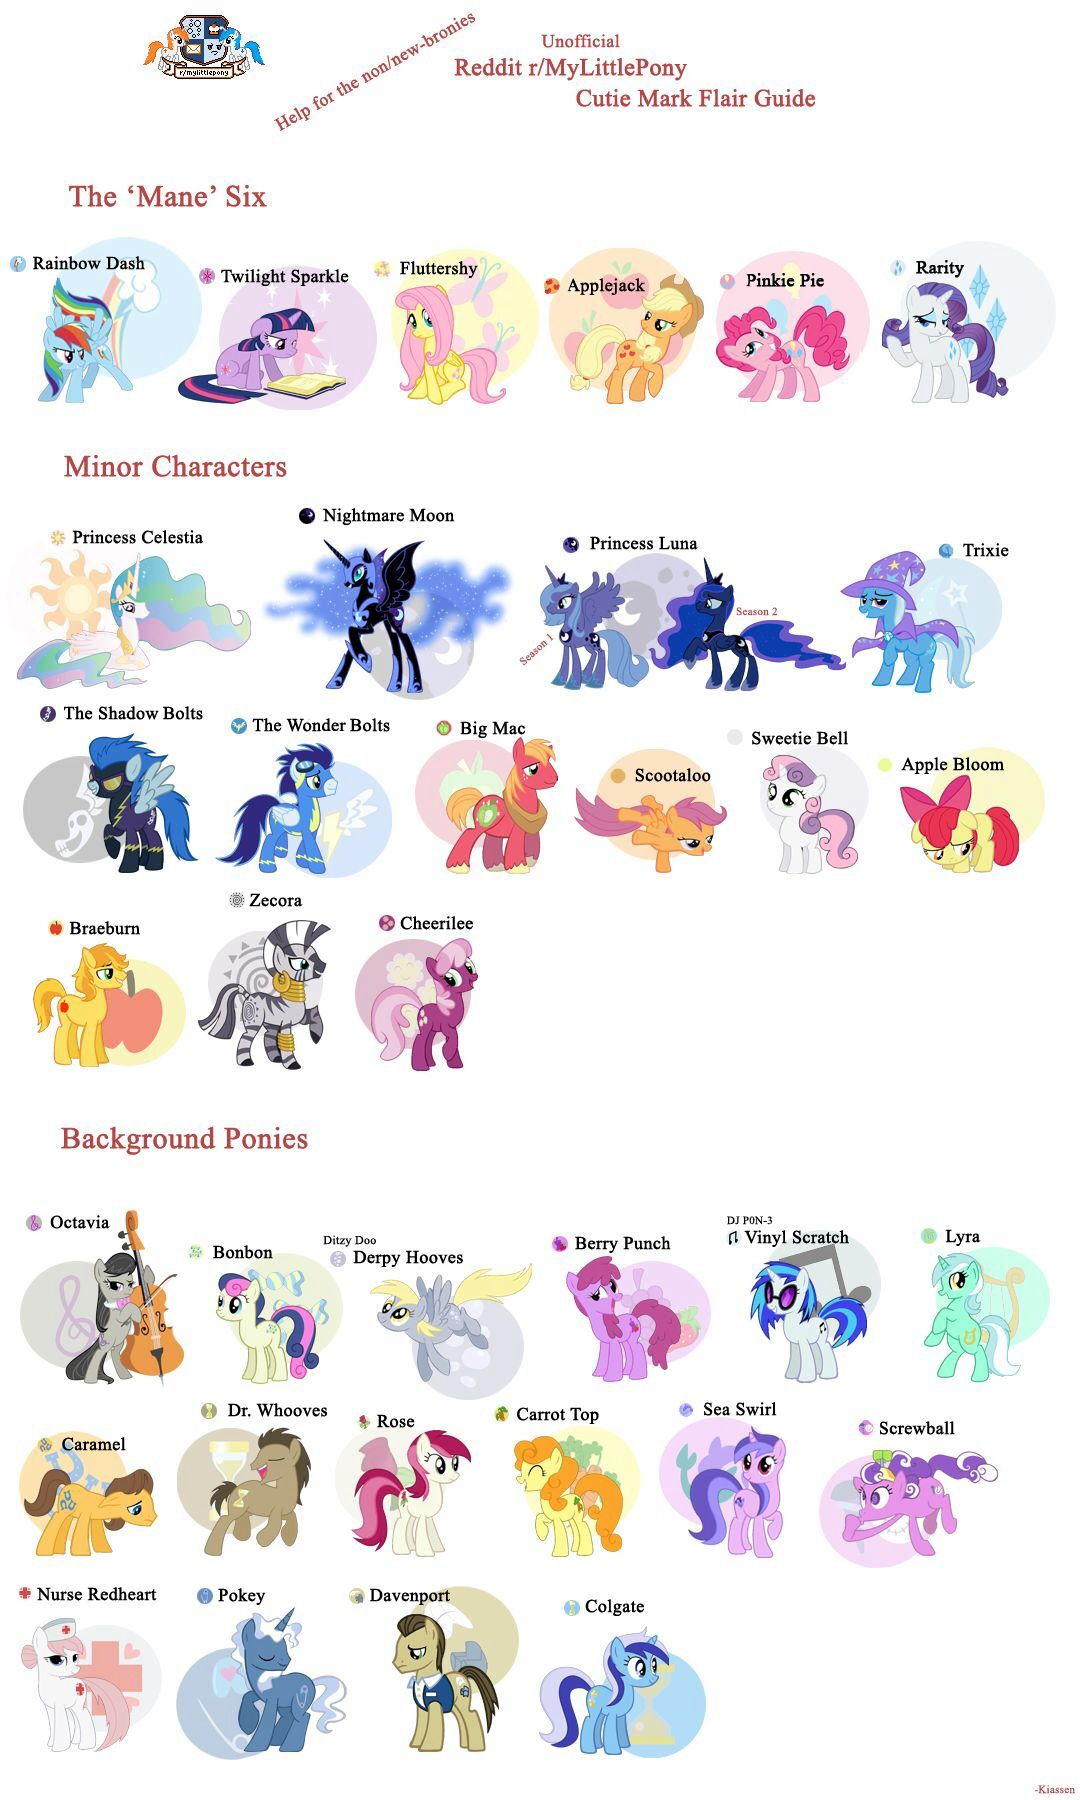 Characters My Little Pony Friendship is Magic